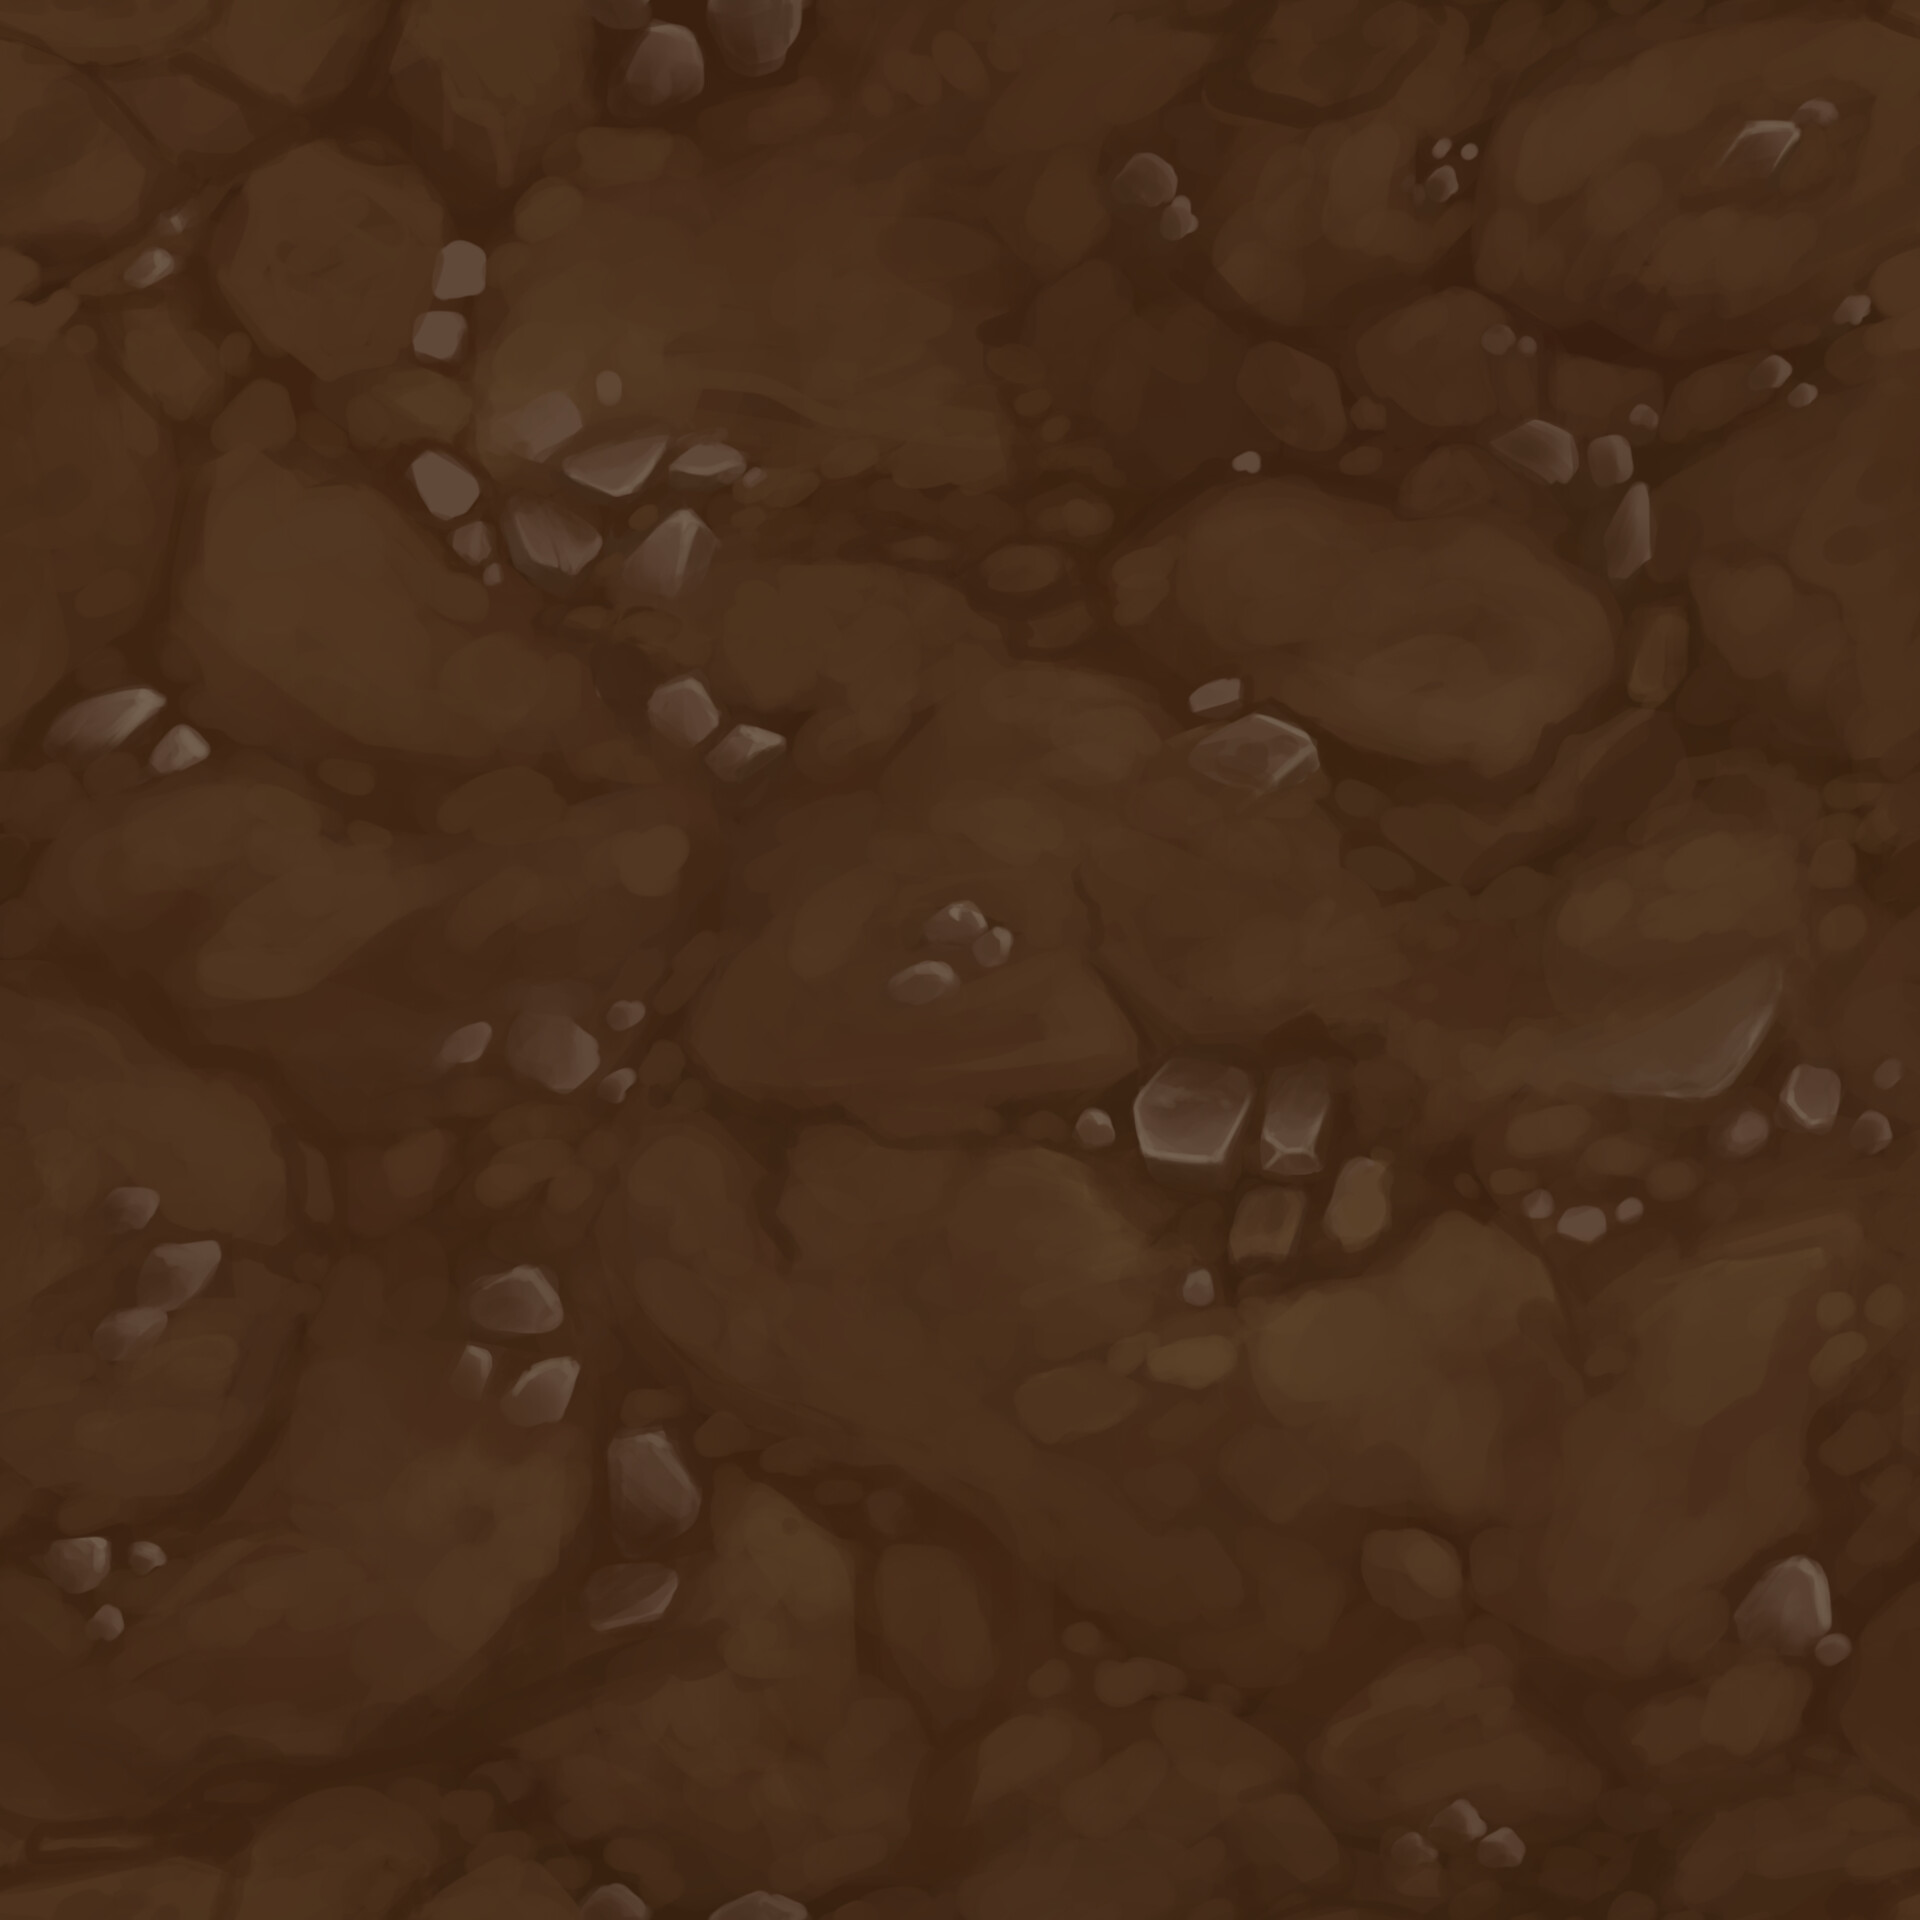 Hand-Painted/Tiling Dirt Texture